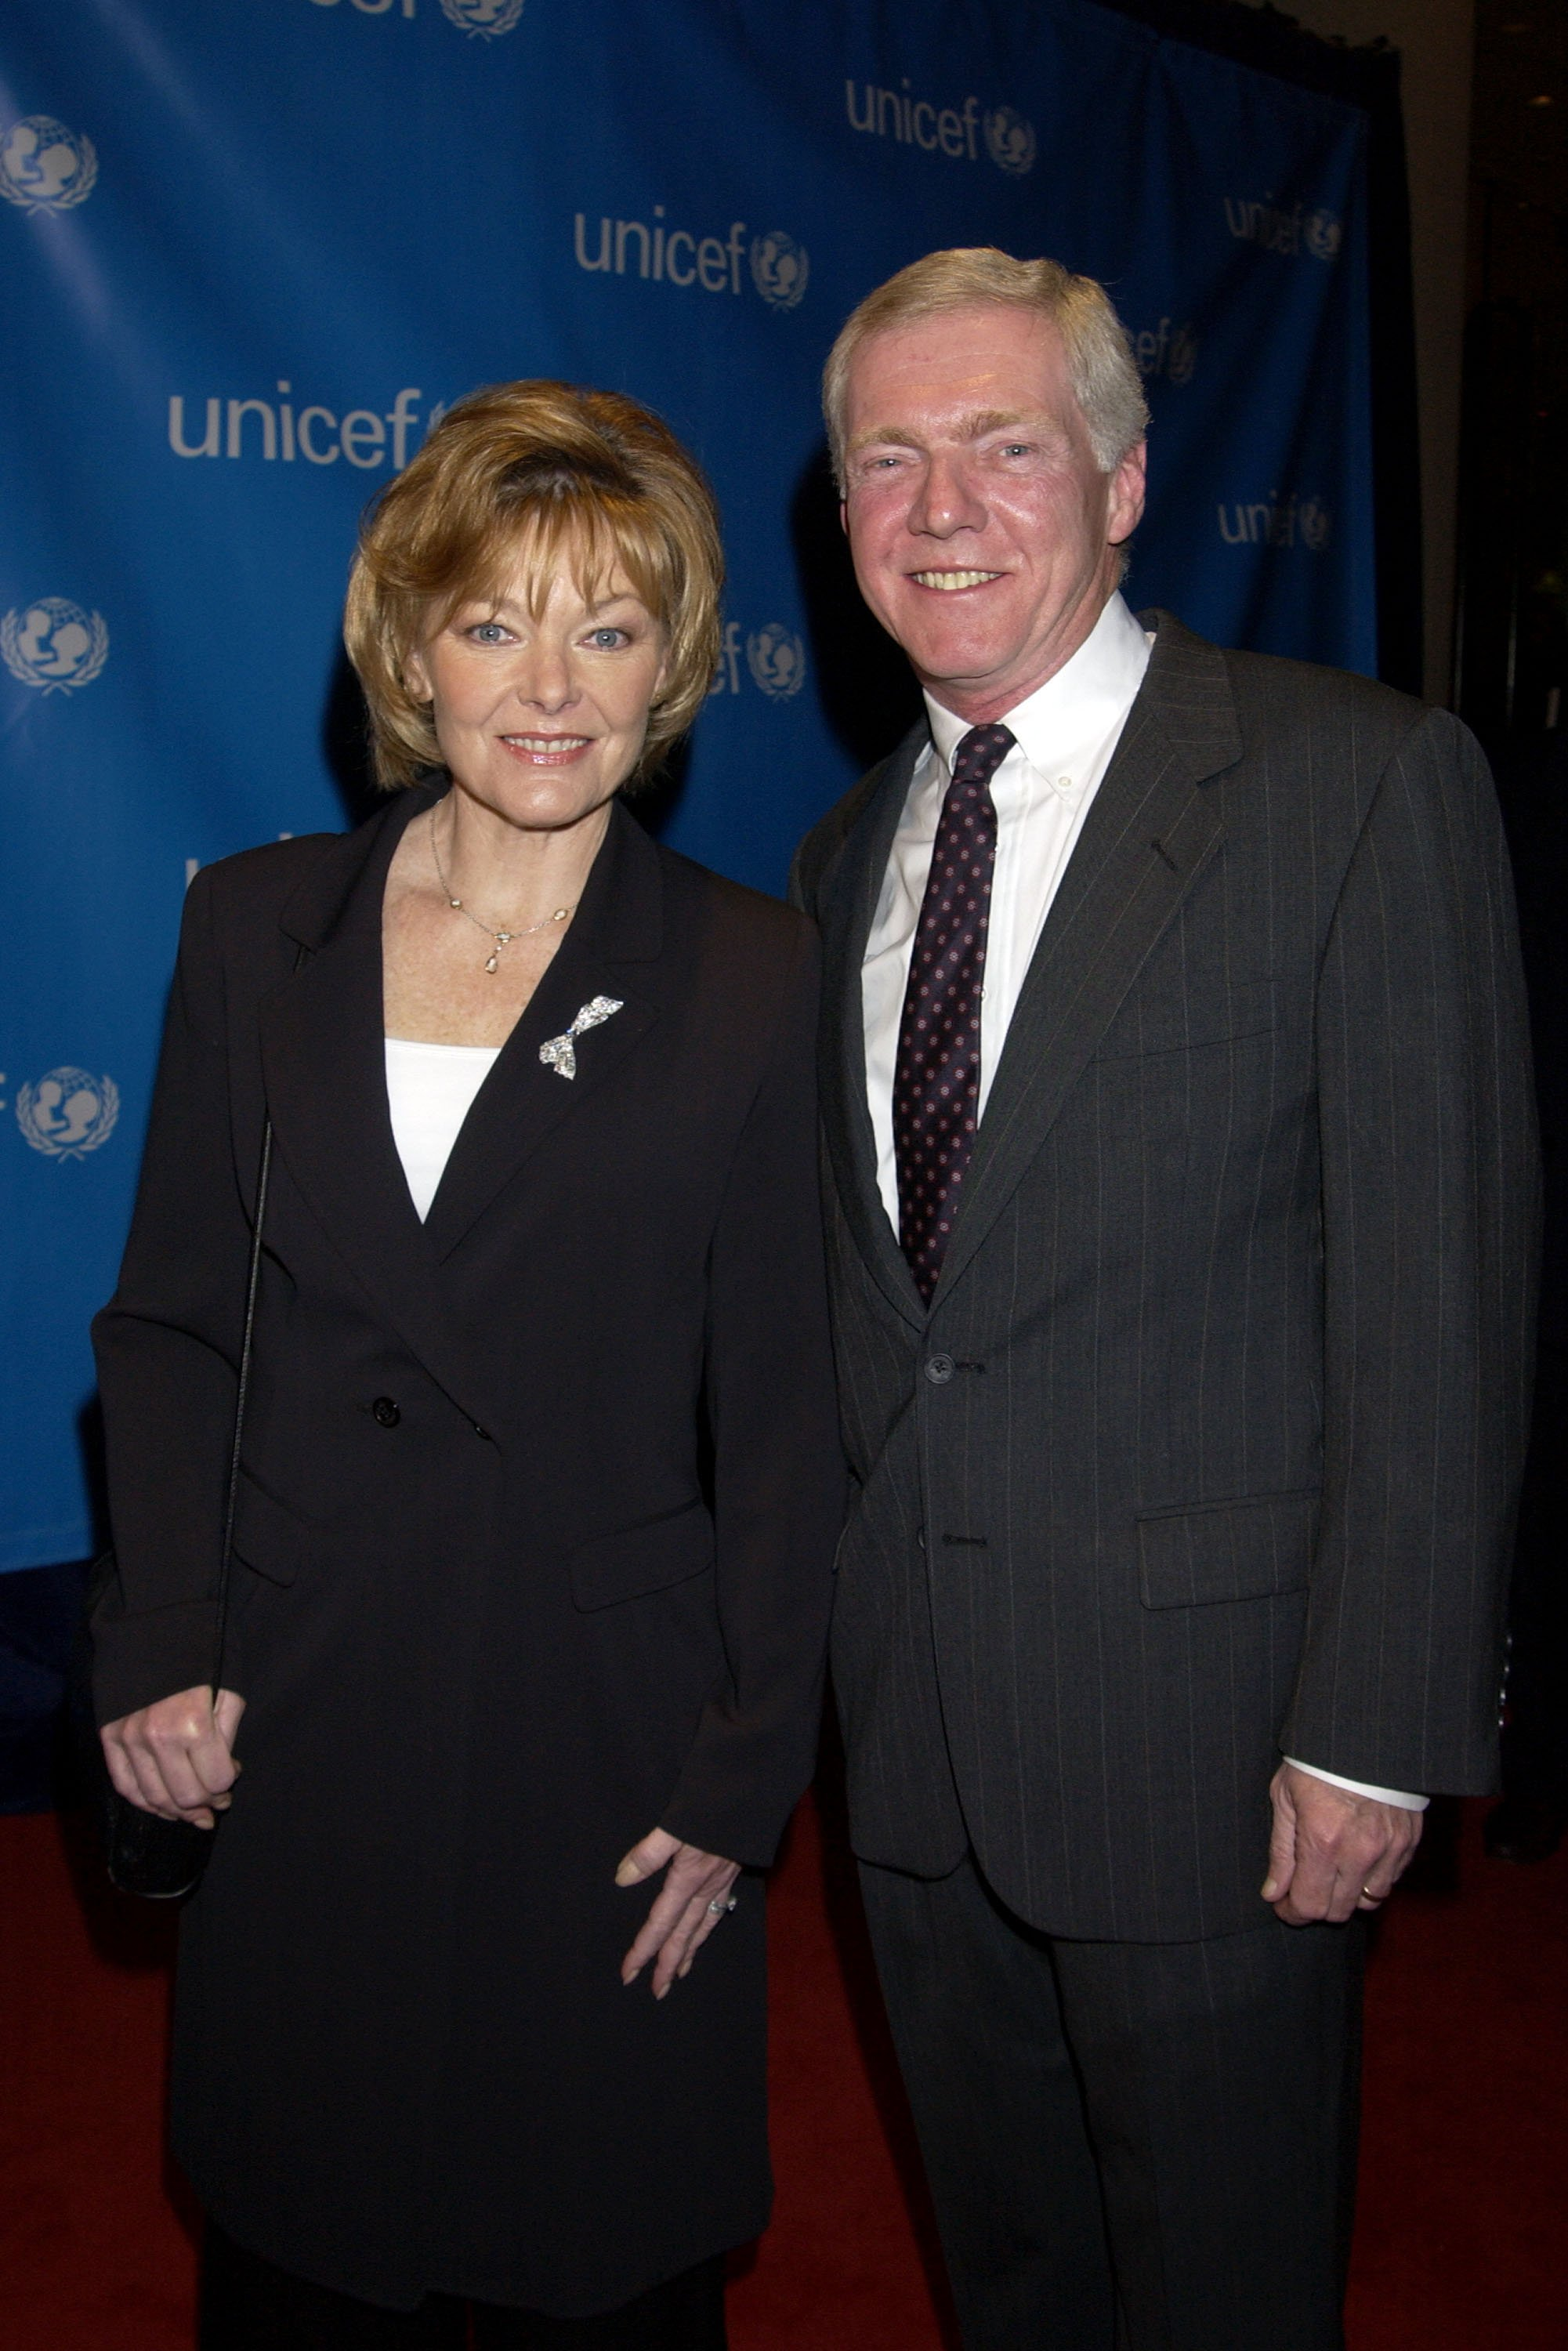 Jane Curtin and husband Patrick Lynch during UNICEF Goodwill Gala Celebrating 50 Years of Celebrity Goodwill Ambassadors - Red Carpet at The Beverly Hilton in Beverly Hills, California, | Photo: GettyImages